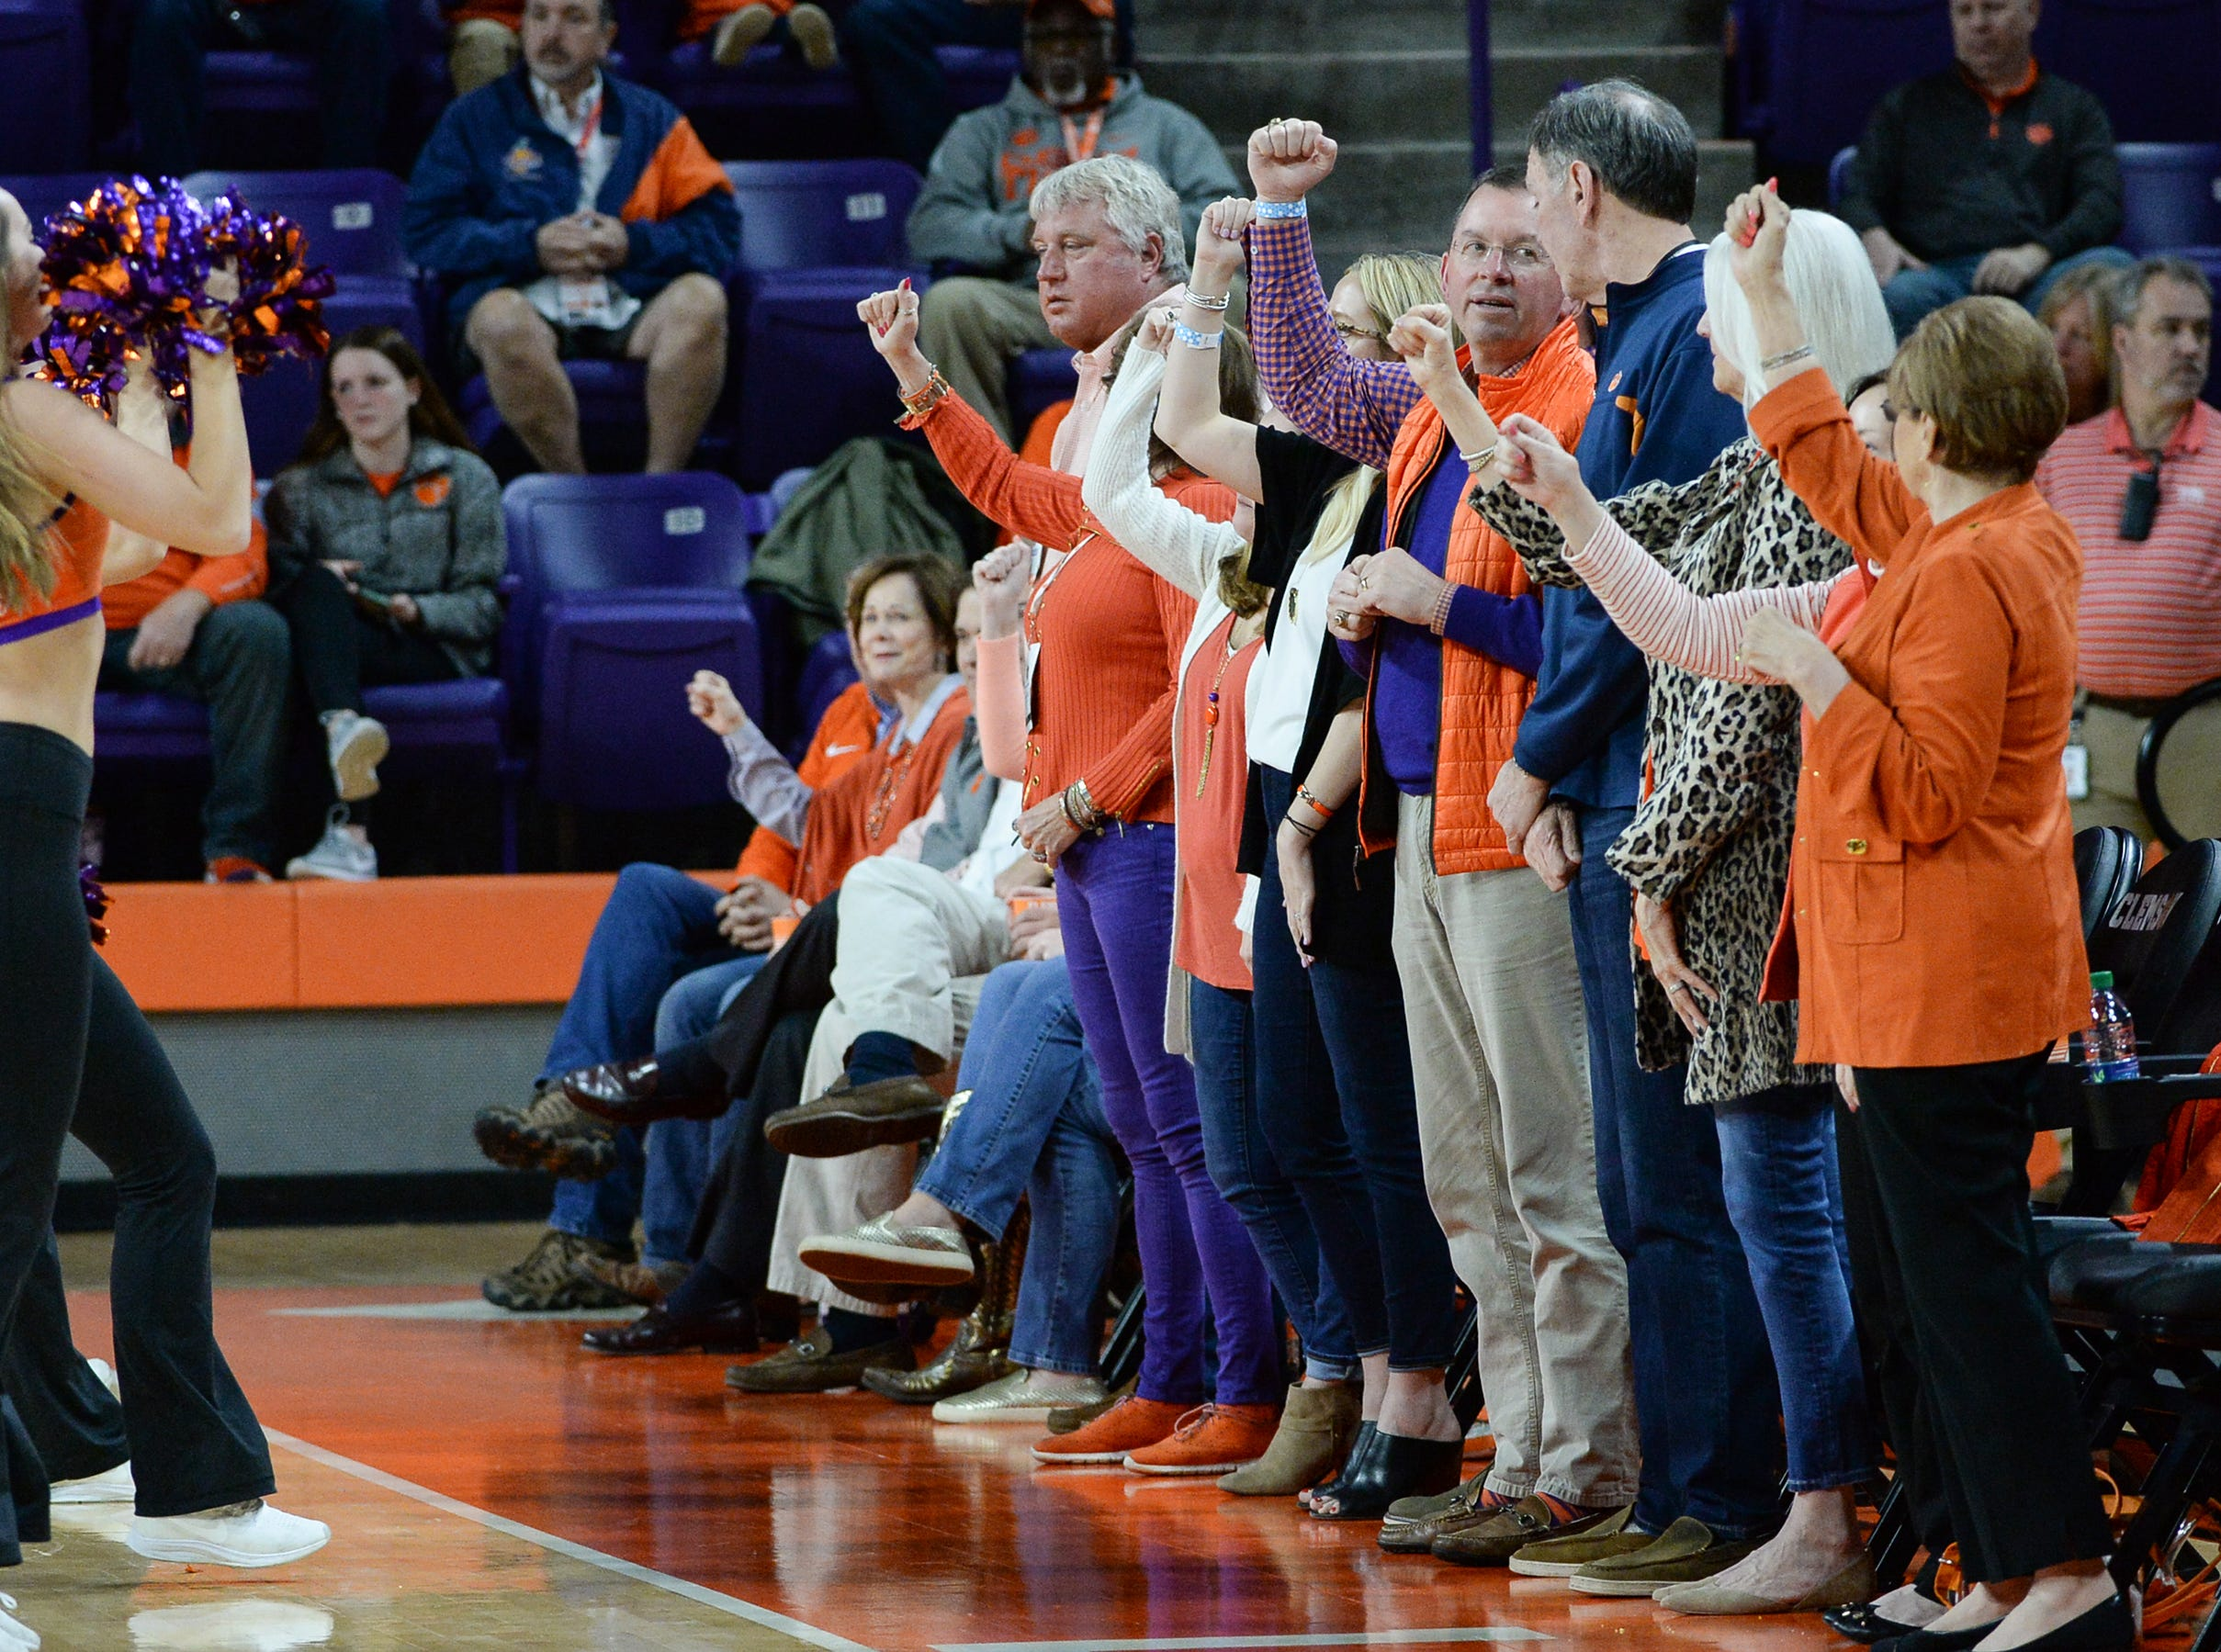 Clemson fans cheer at the NIT at Littlejohn Coliseum in Clemson Tuesday, March 19, 2019.